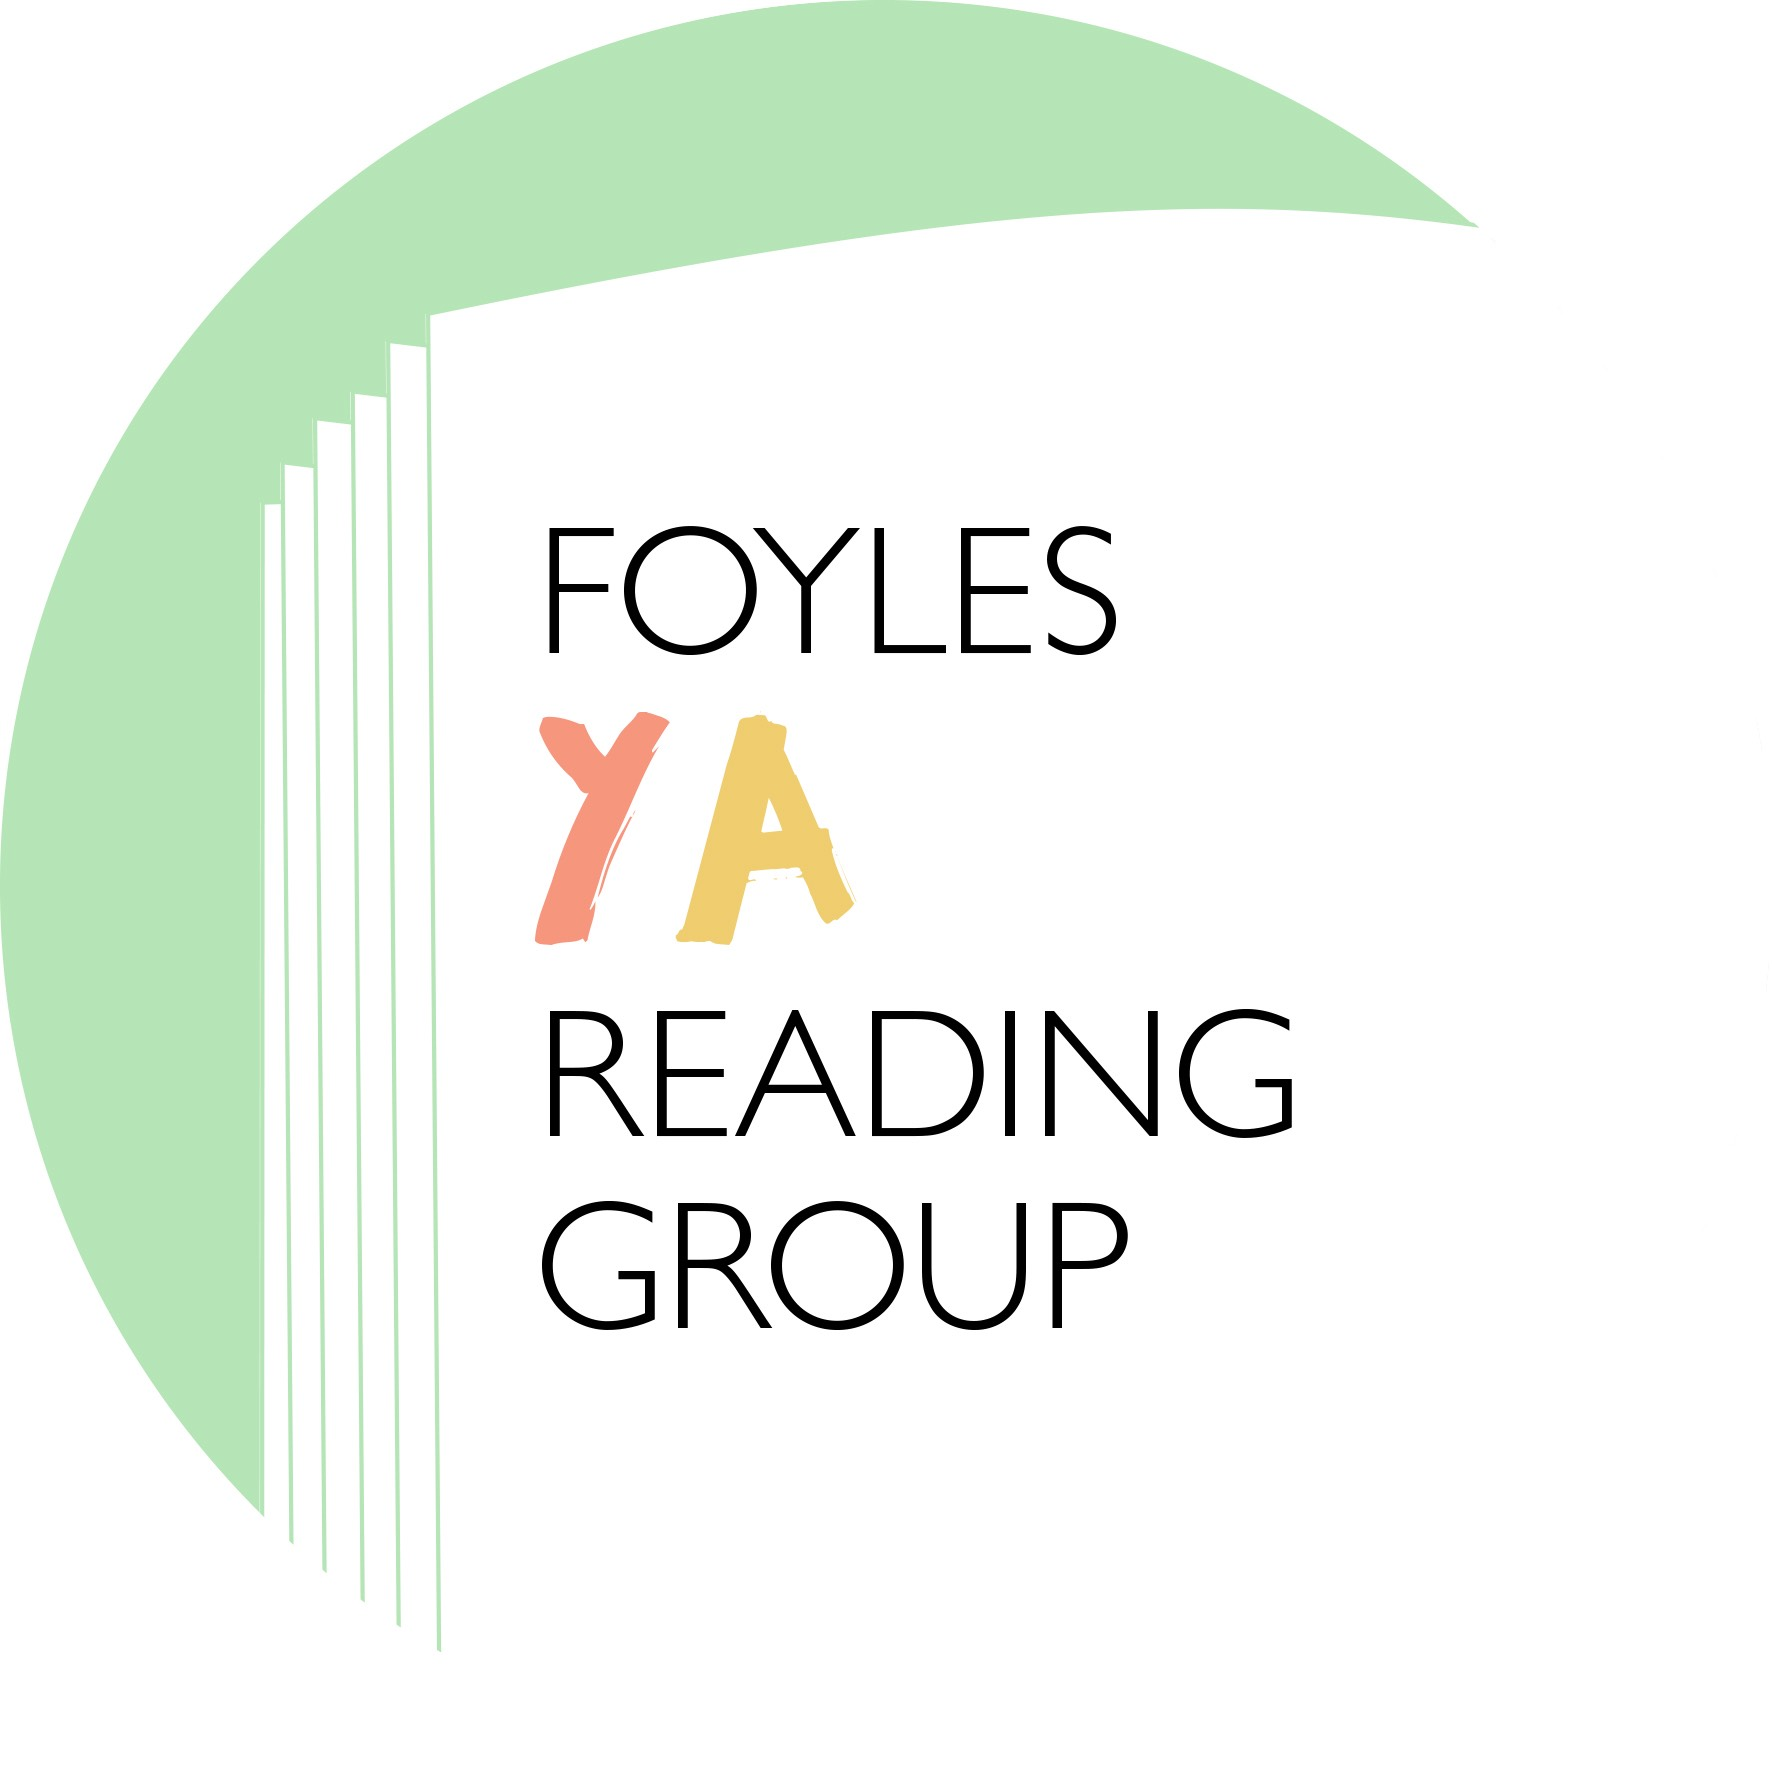 Foyles Chelmsford Young Adult Reading Group: January